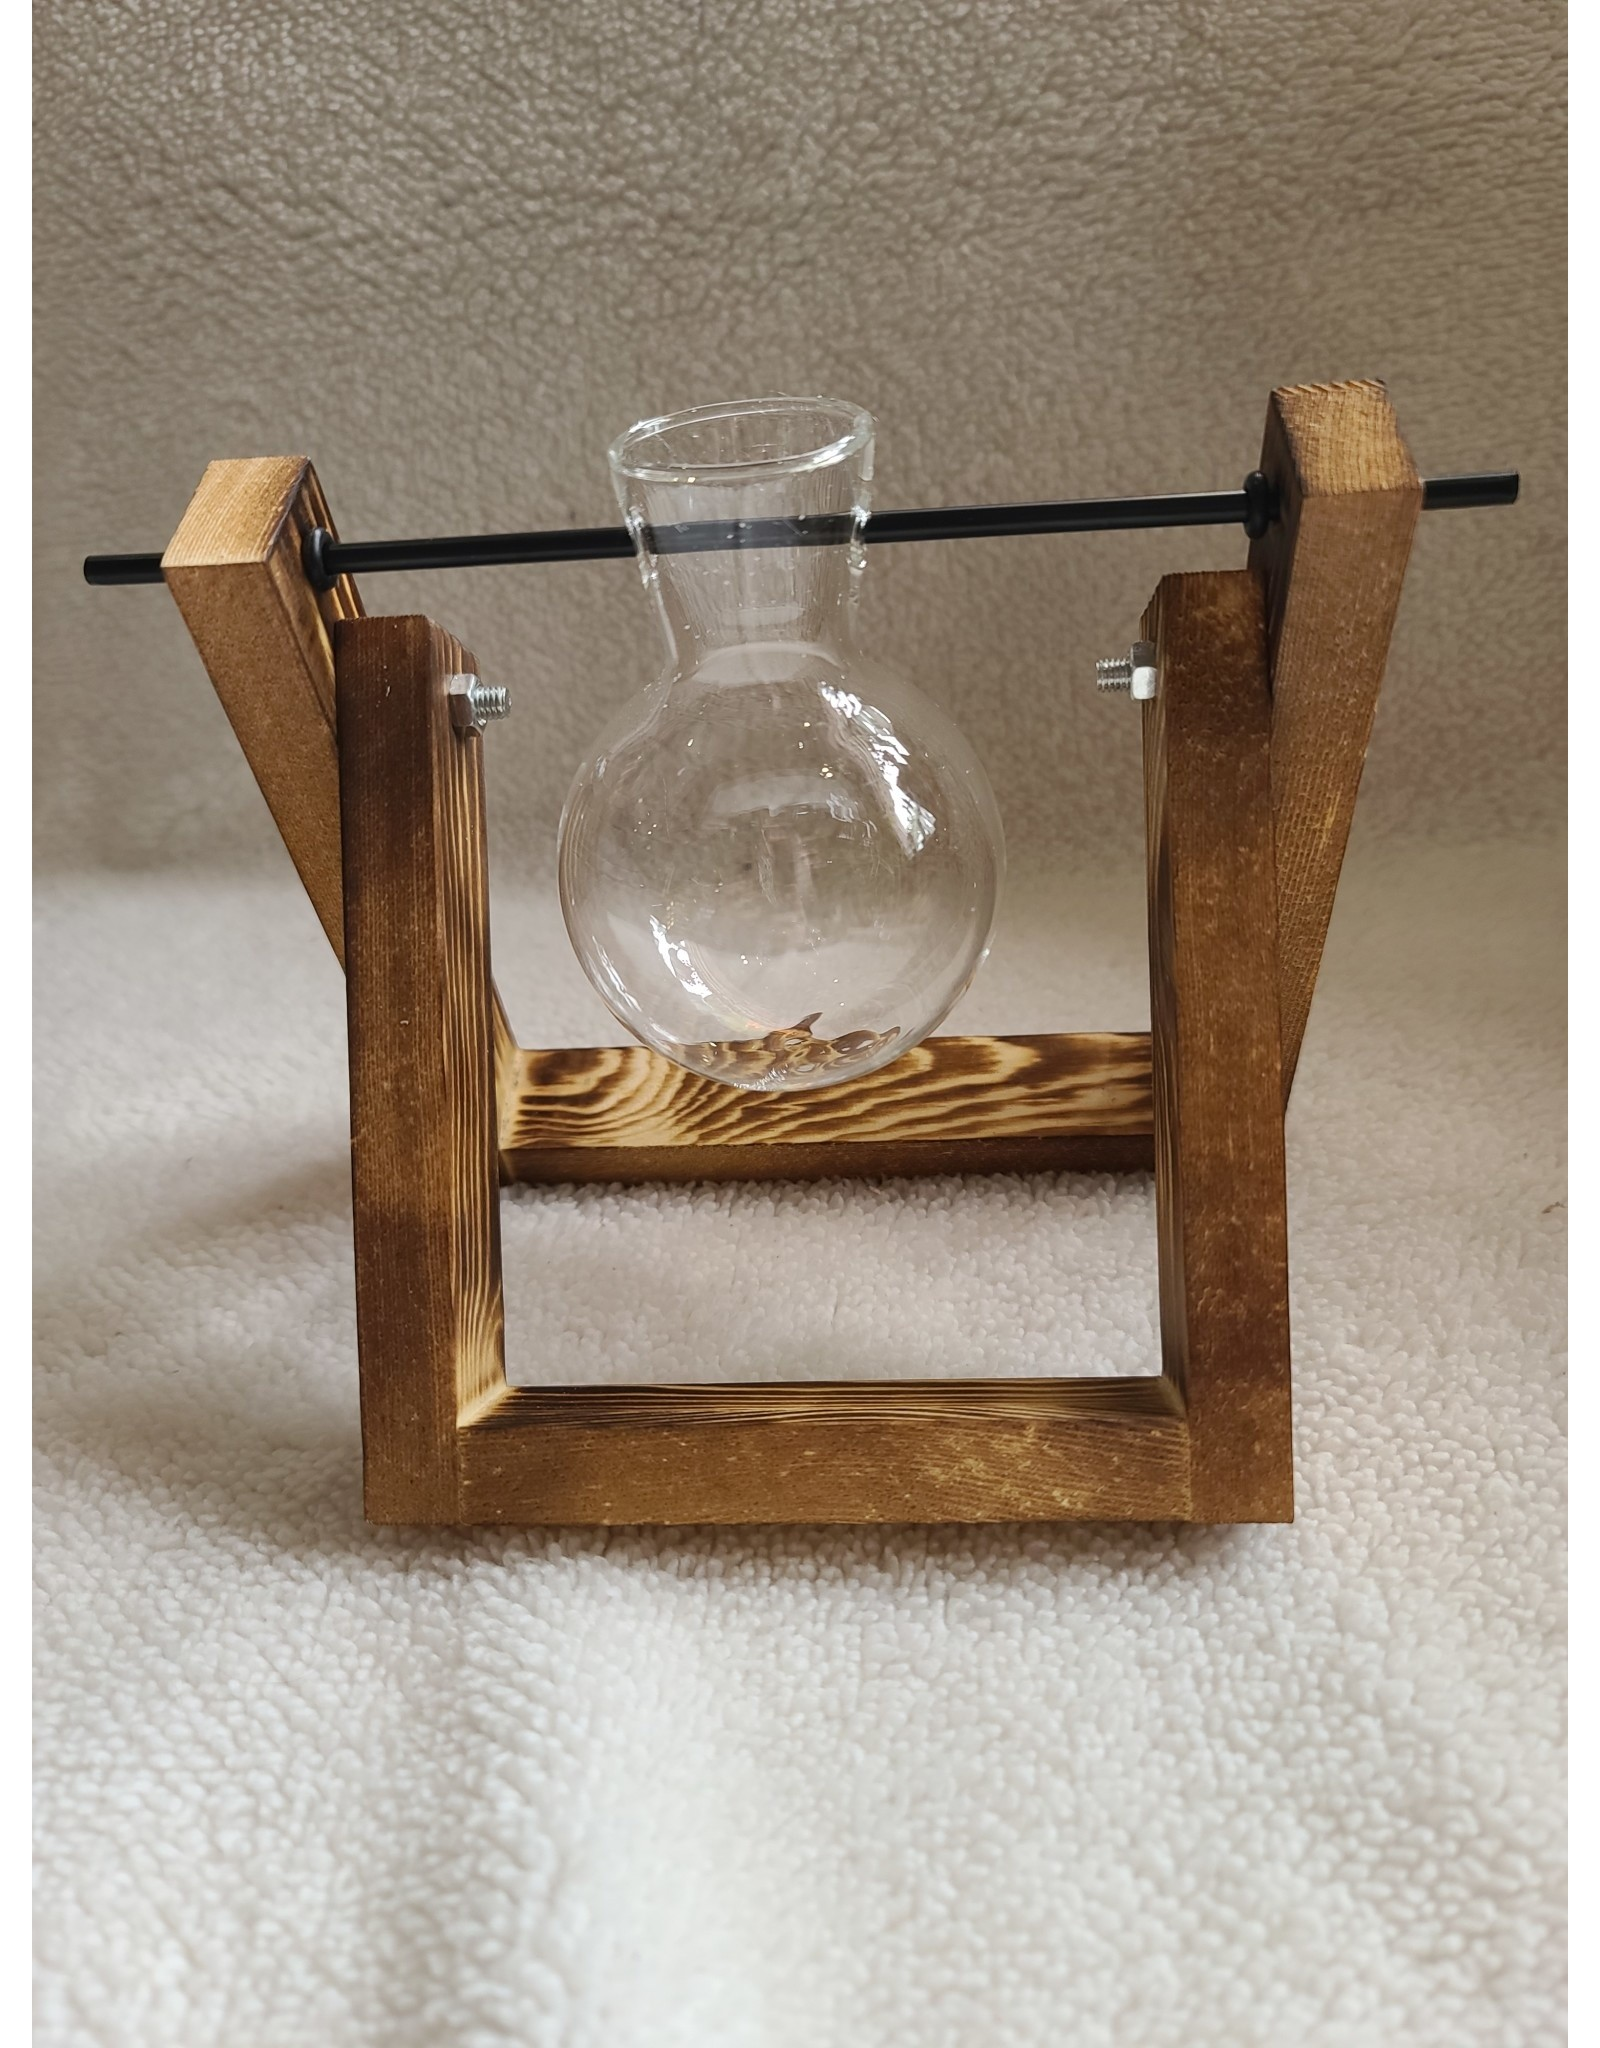 Glass Planter Bulb w/ Wooden Stand | 1 Bulb